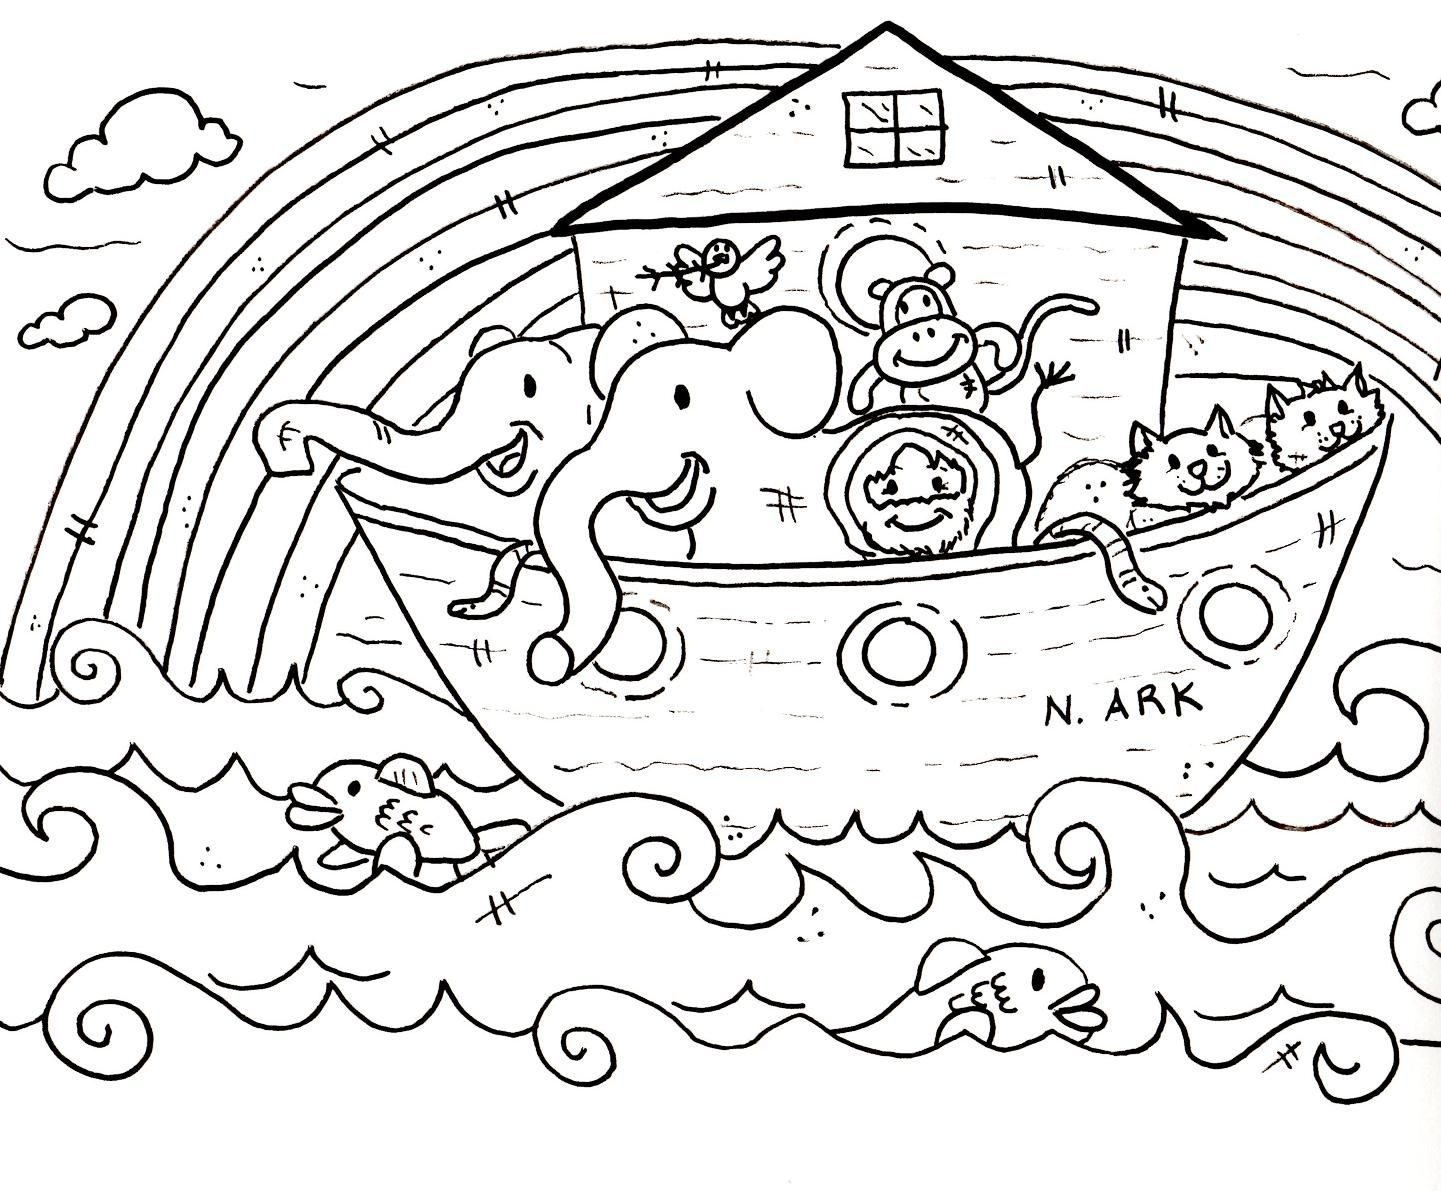 Children Coloring Pages For Church |  Sunday School Coloring - Free Printable Sunday School Coloring Pages